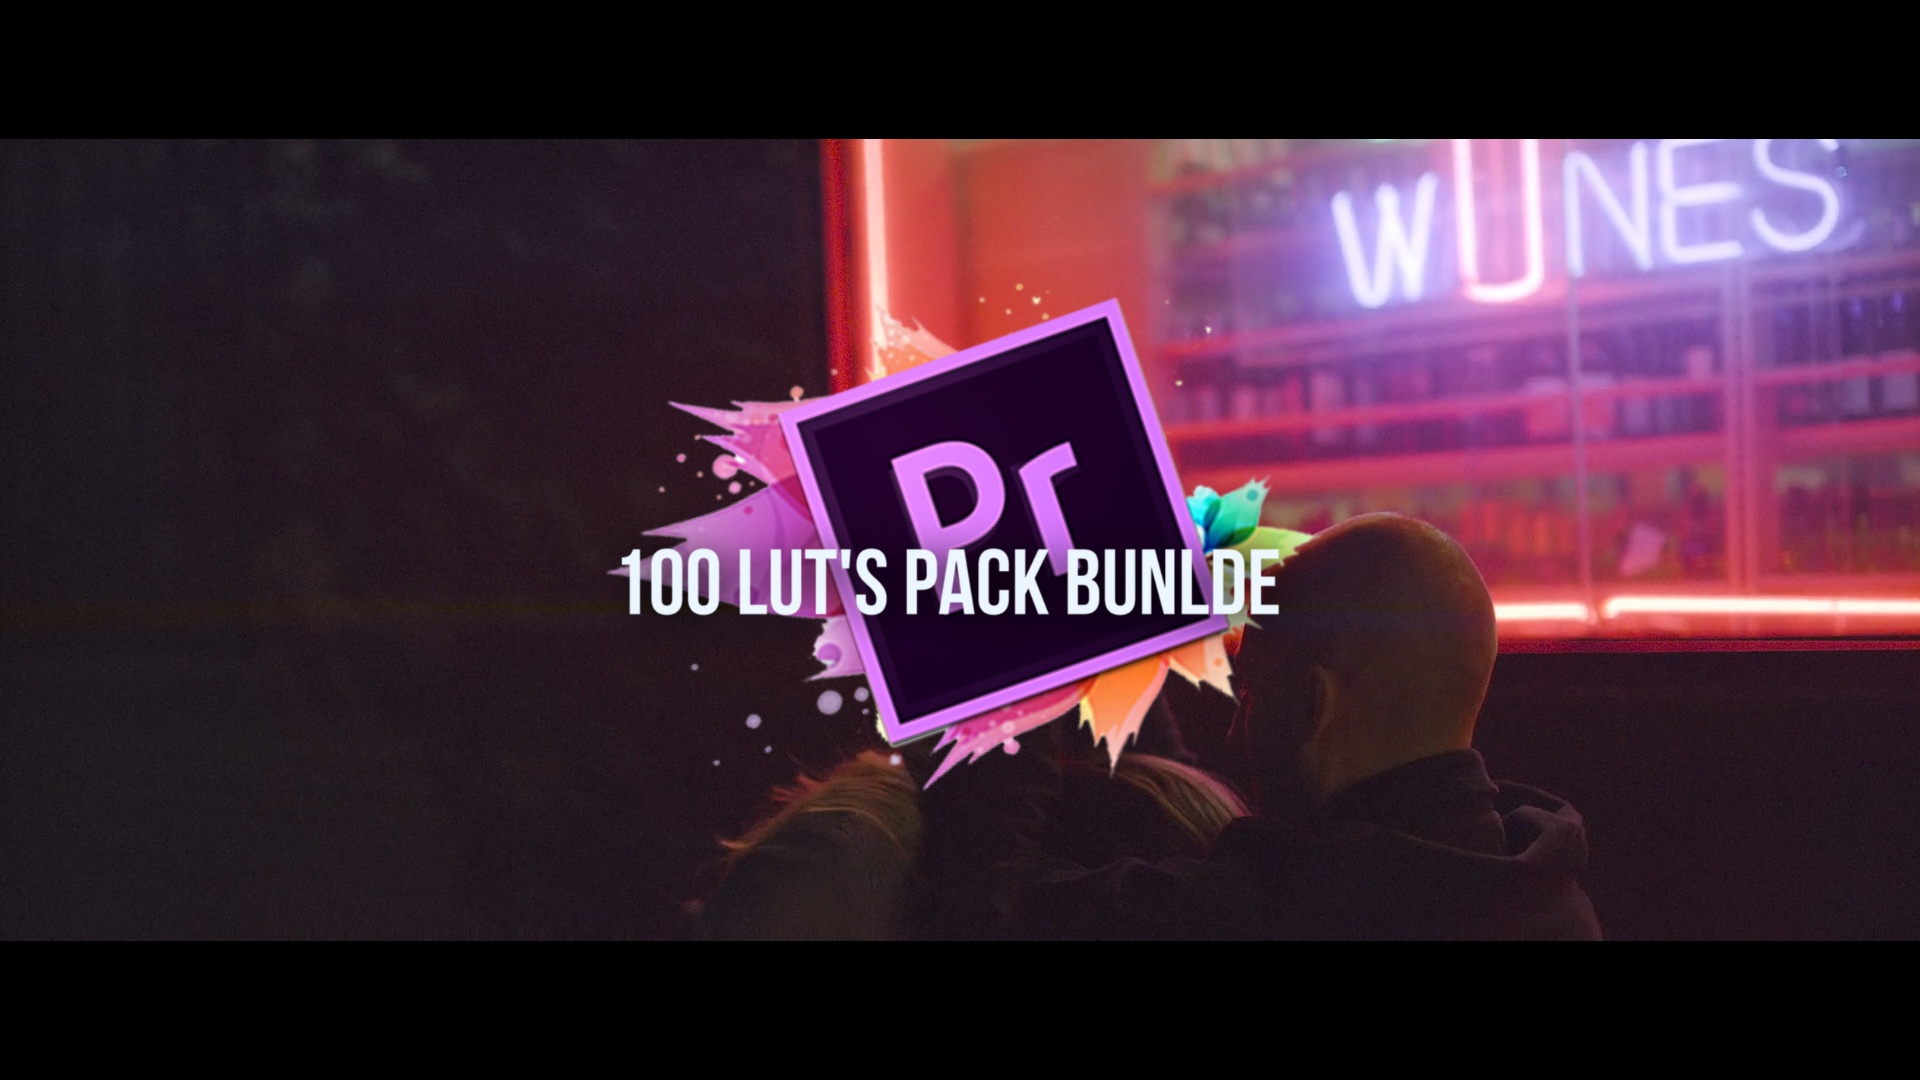 (Best Seller) 100+ Lut's Pack For Professional Color Grading